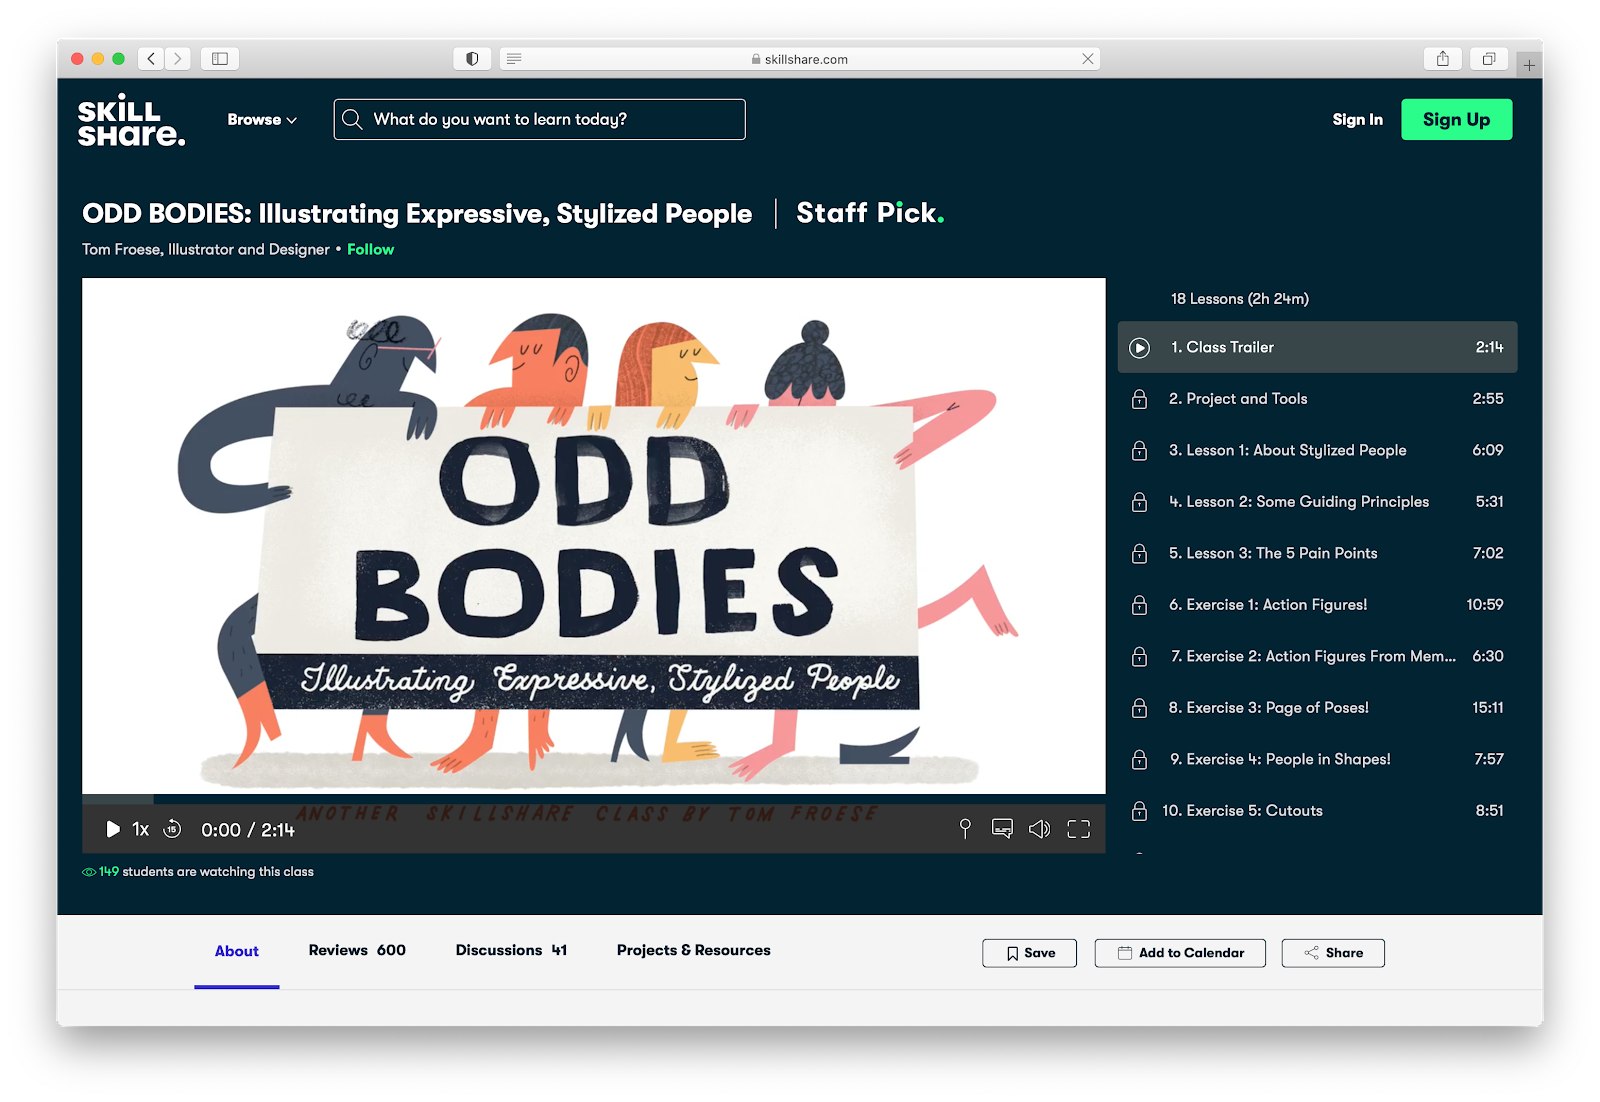 ODD BODIES: Illustrating Expressive, Stylized People | Tom Froese | Skillshare